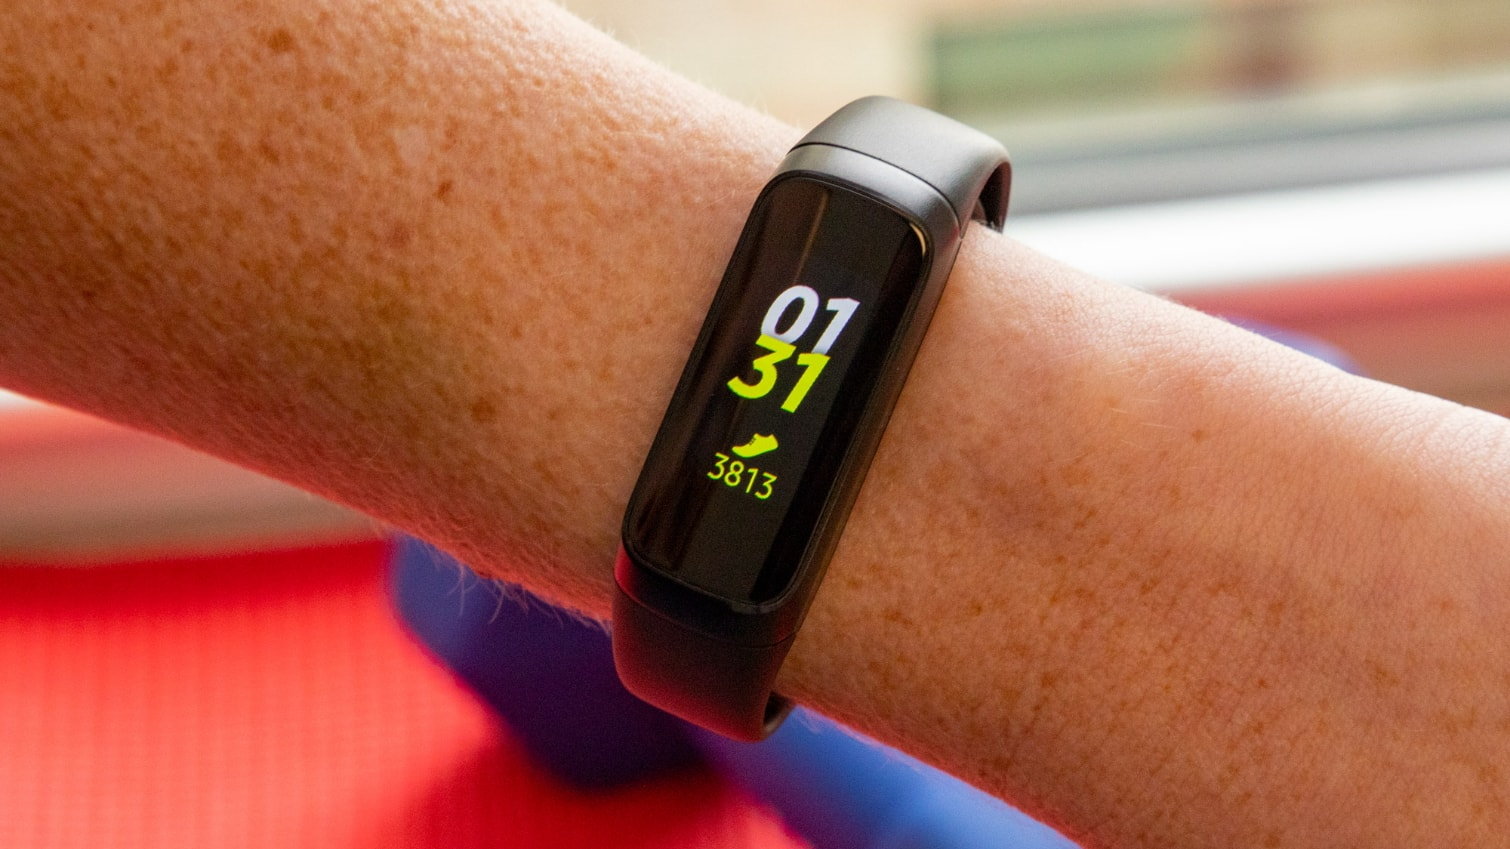 7. Gear Fit 2 Pro – Samsung's Best Fitness Tracker